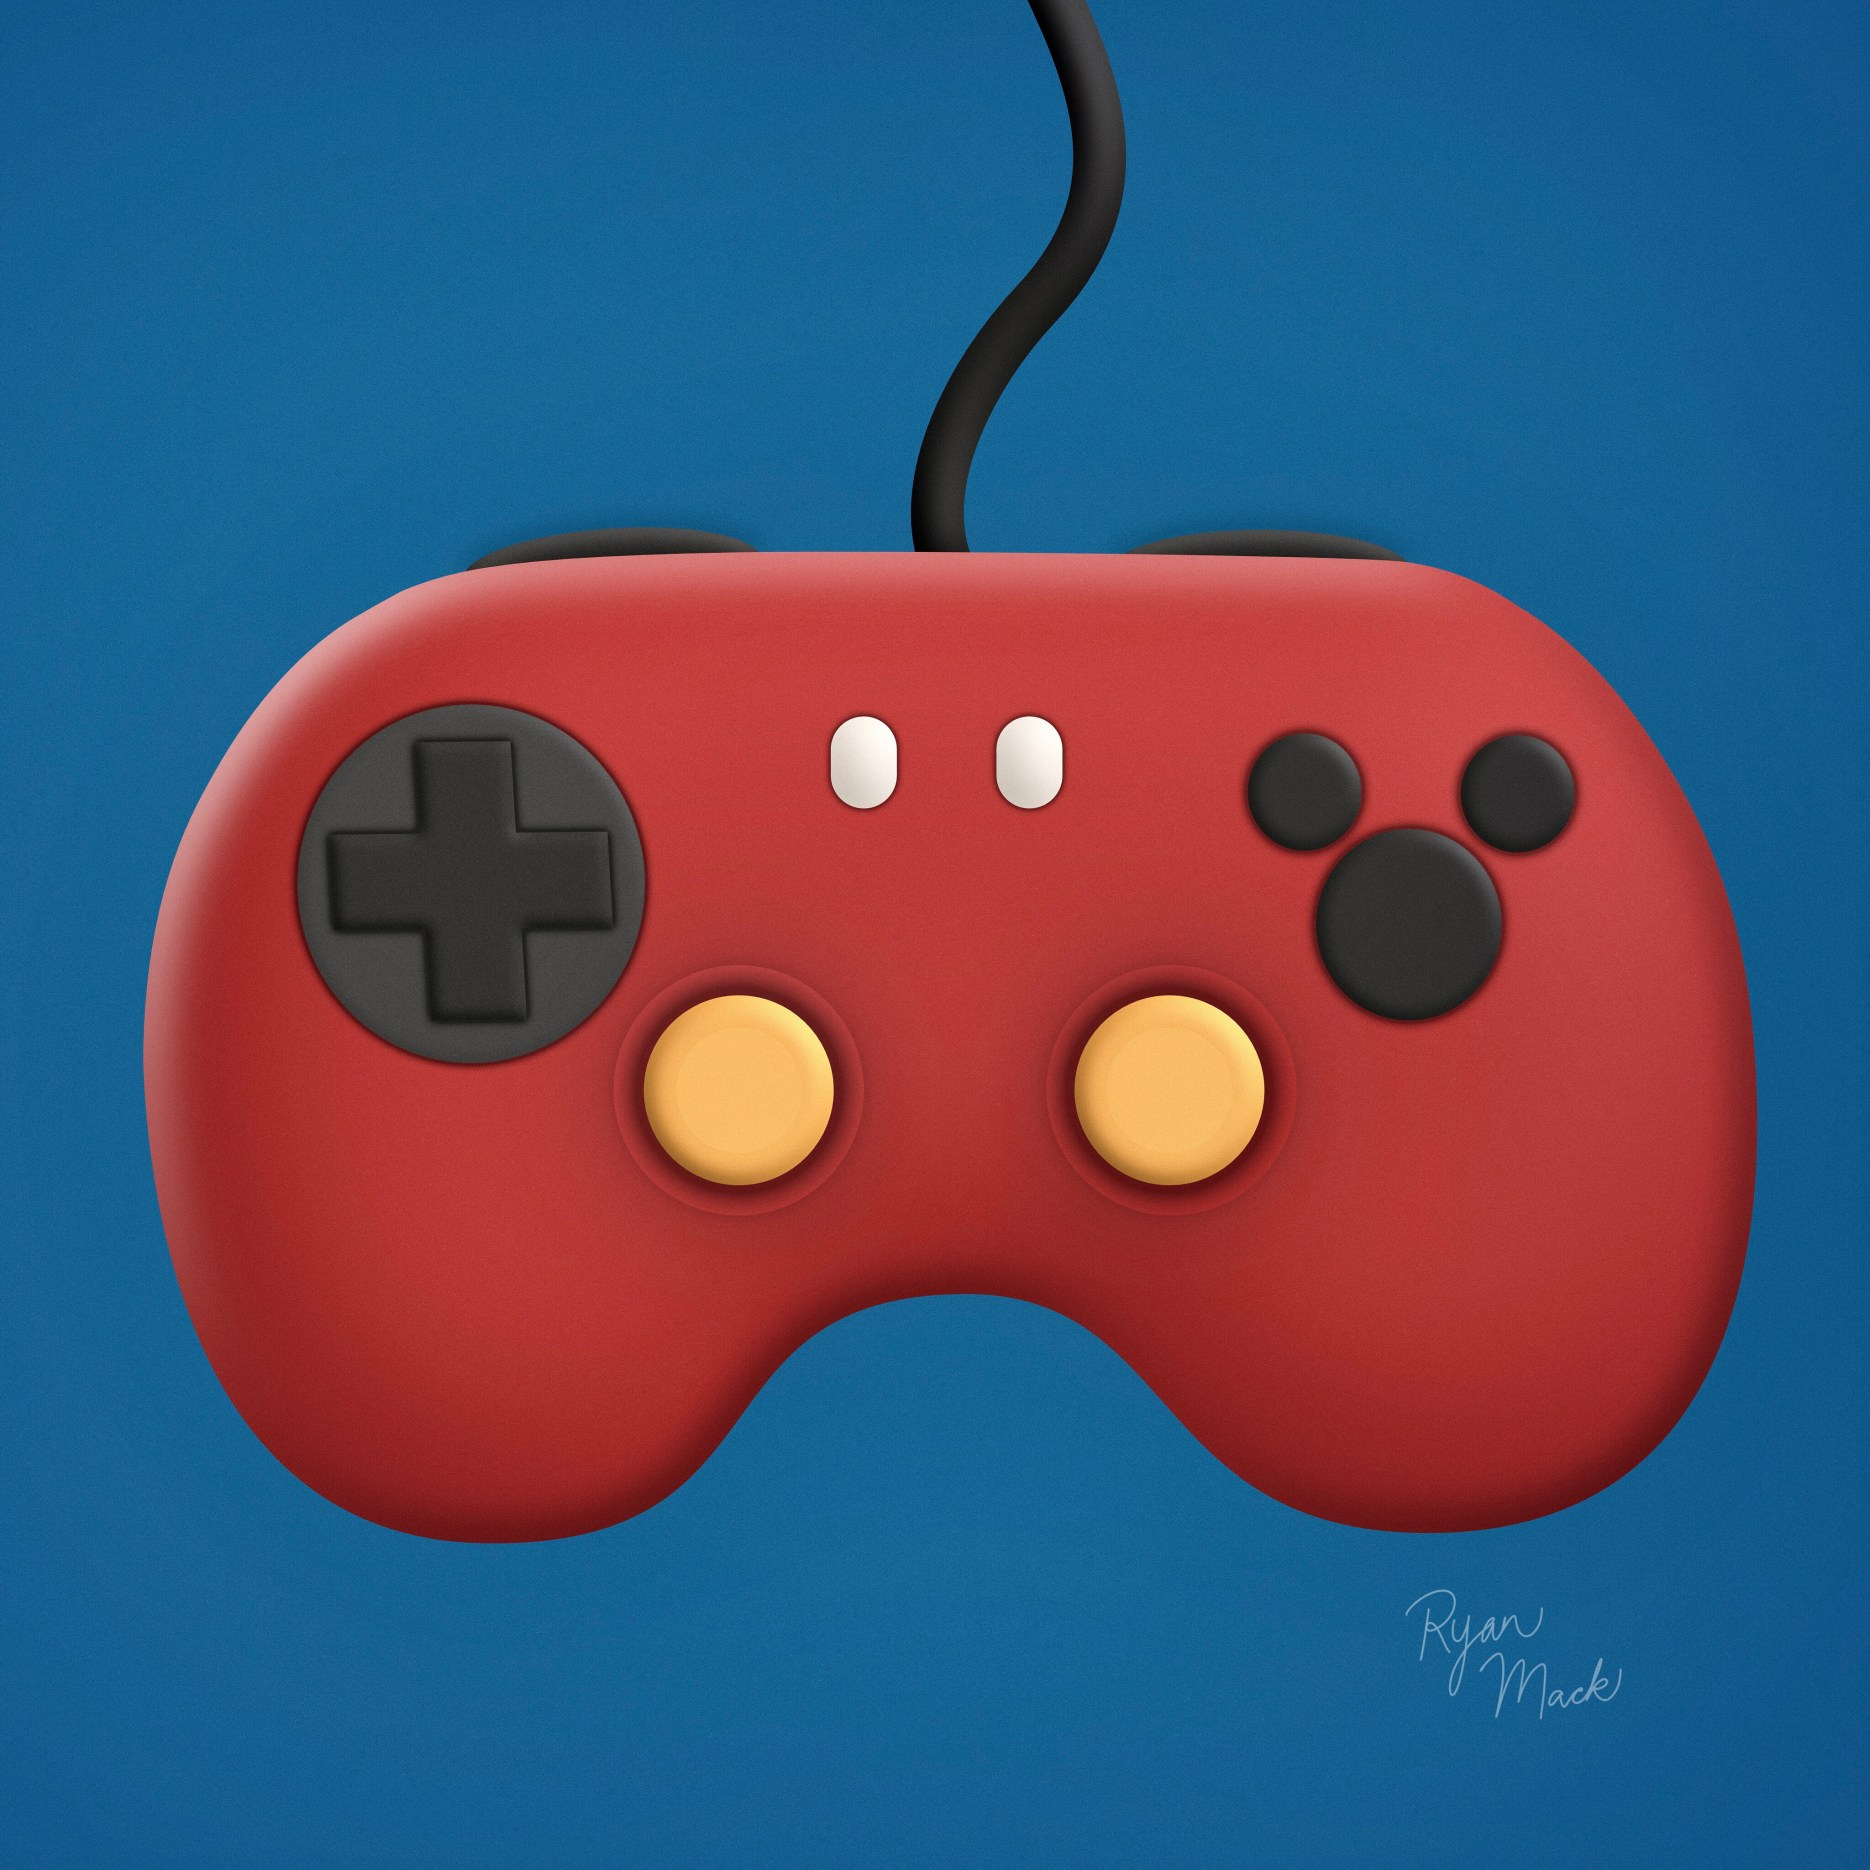 Red Video Game Controller Shaped like Mickey's Shorts with Mickey Head Buttons